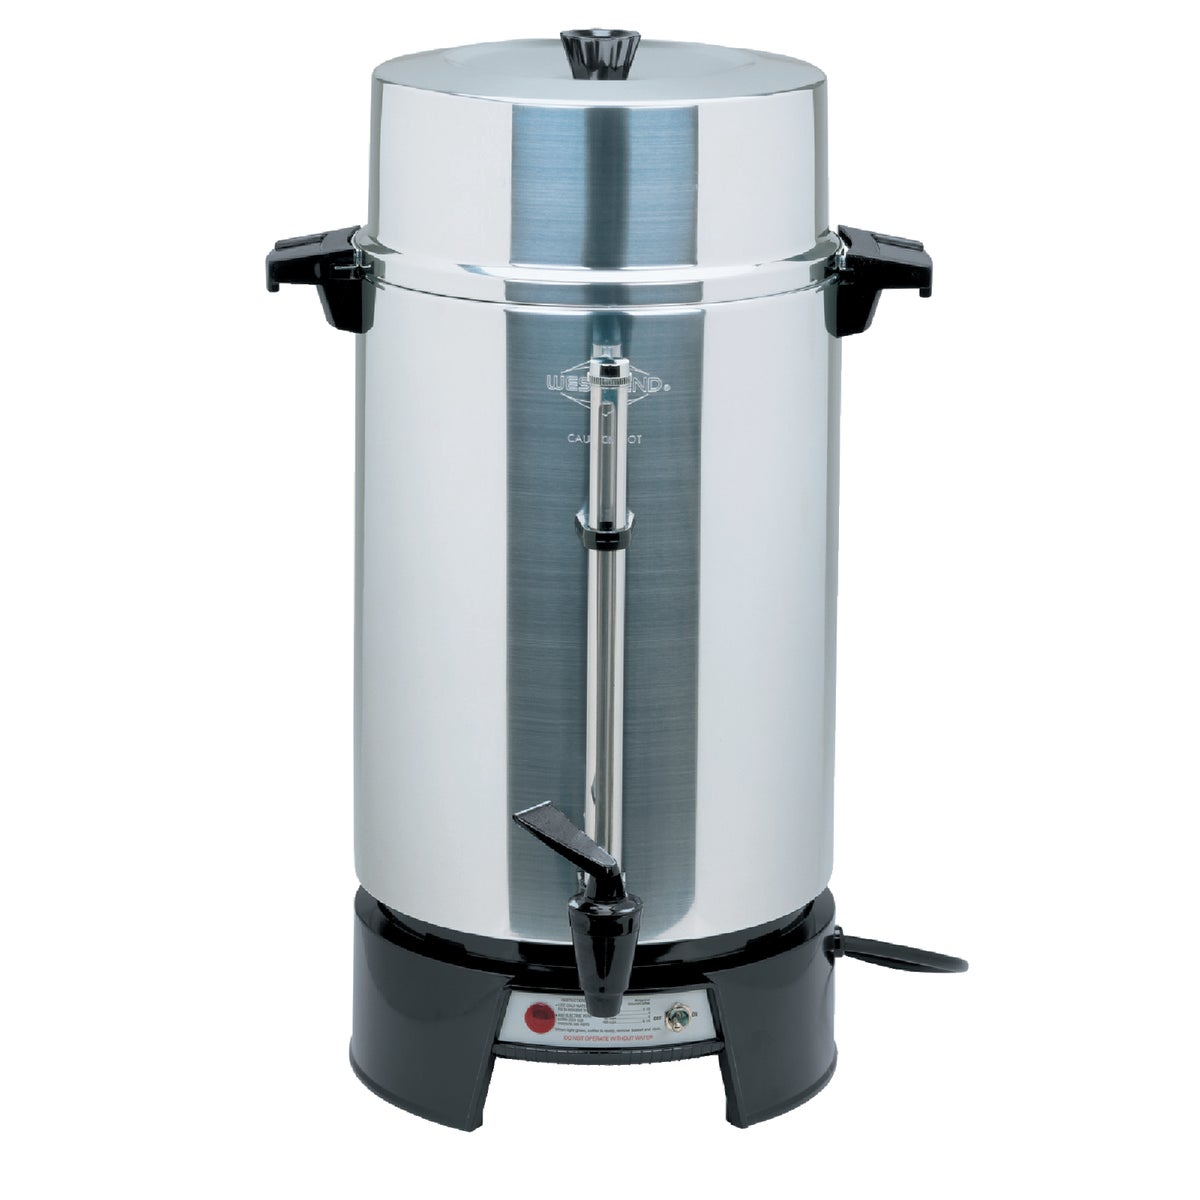 100CUP ALUM COFFEE MAKER